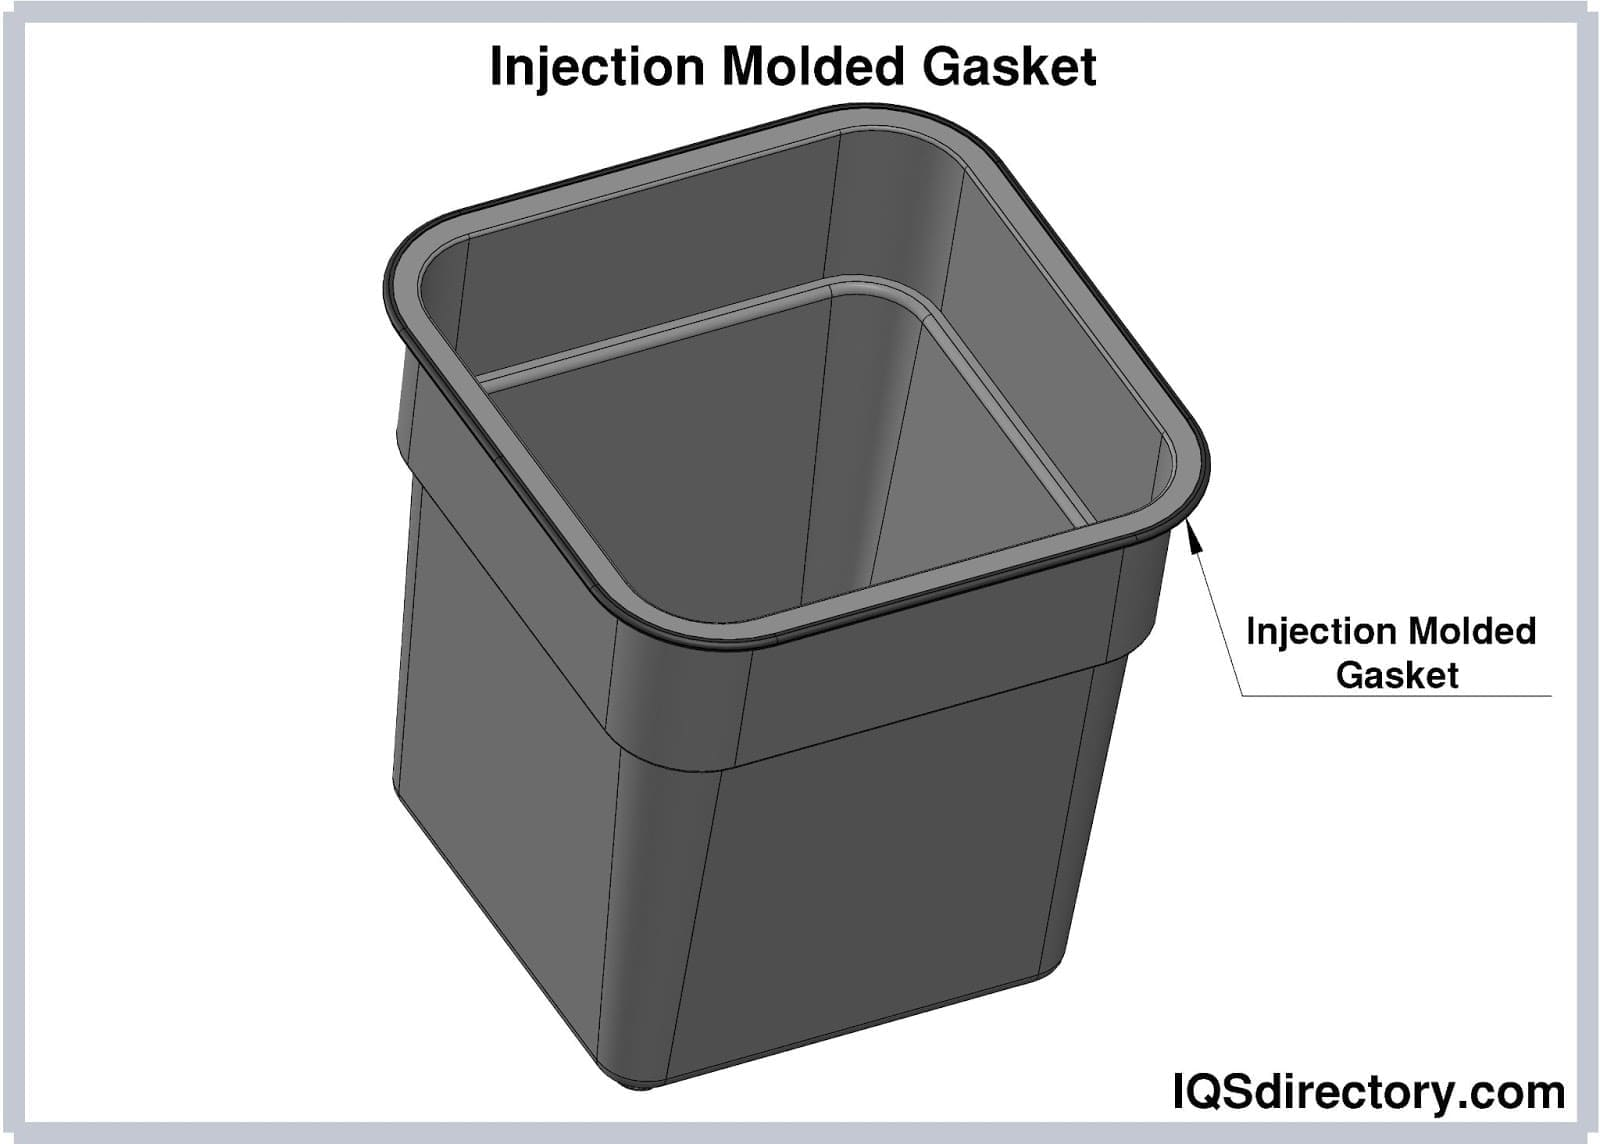 Injection Molded Gasket